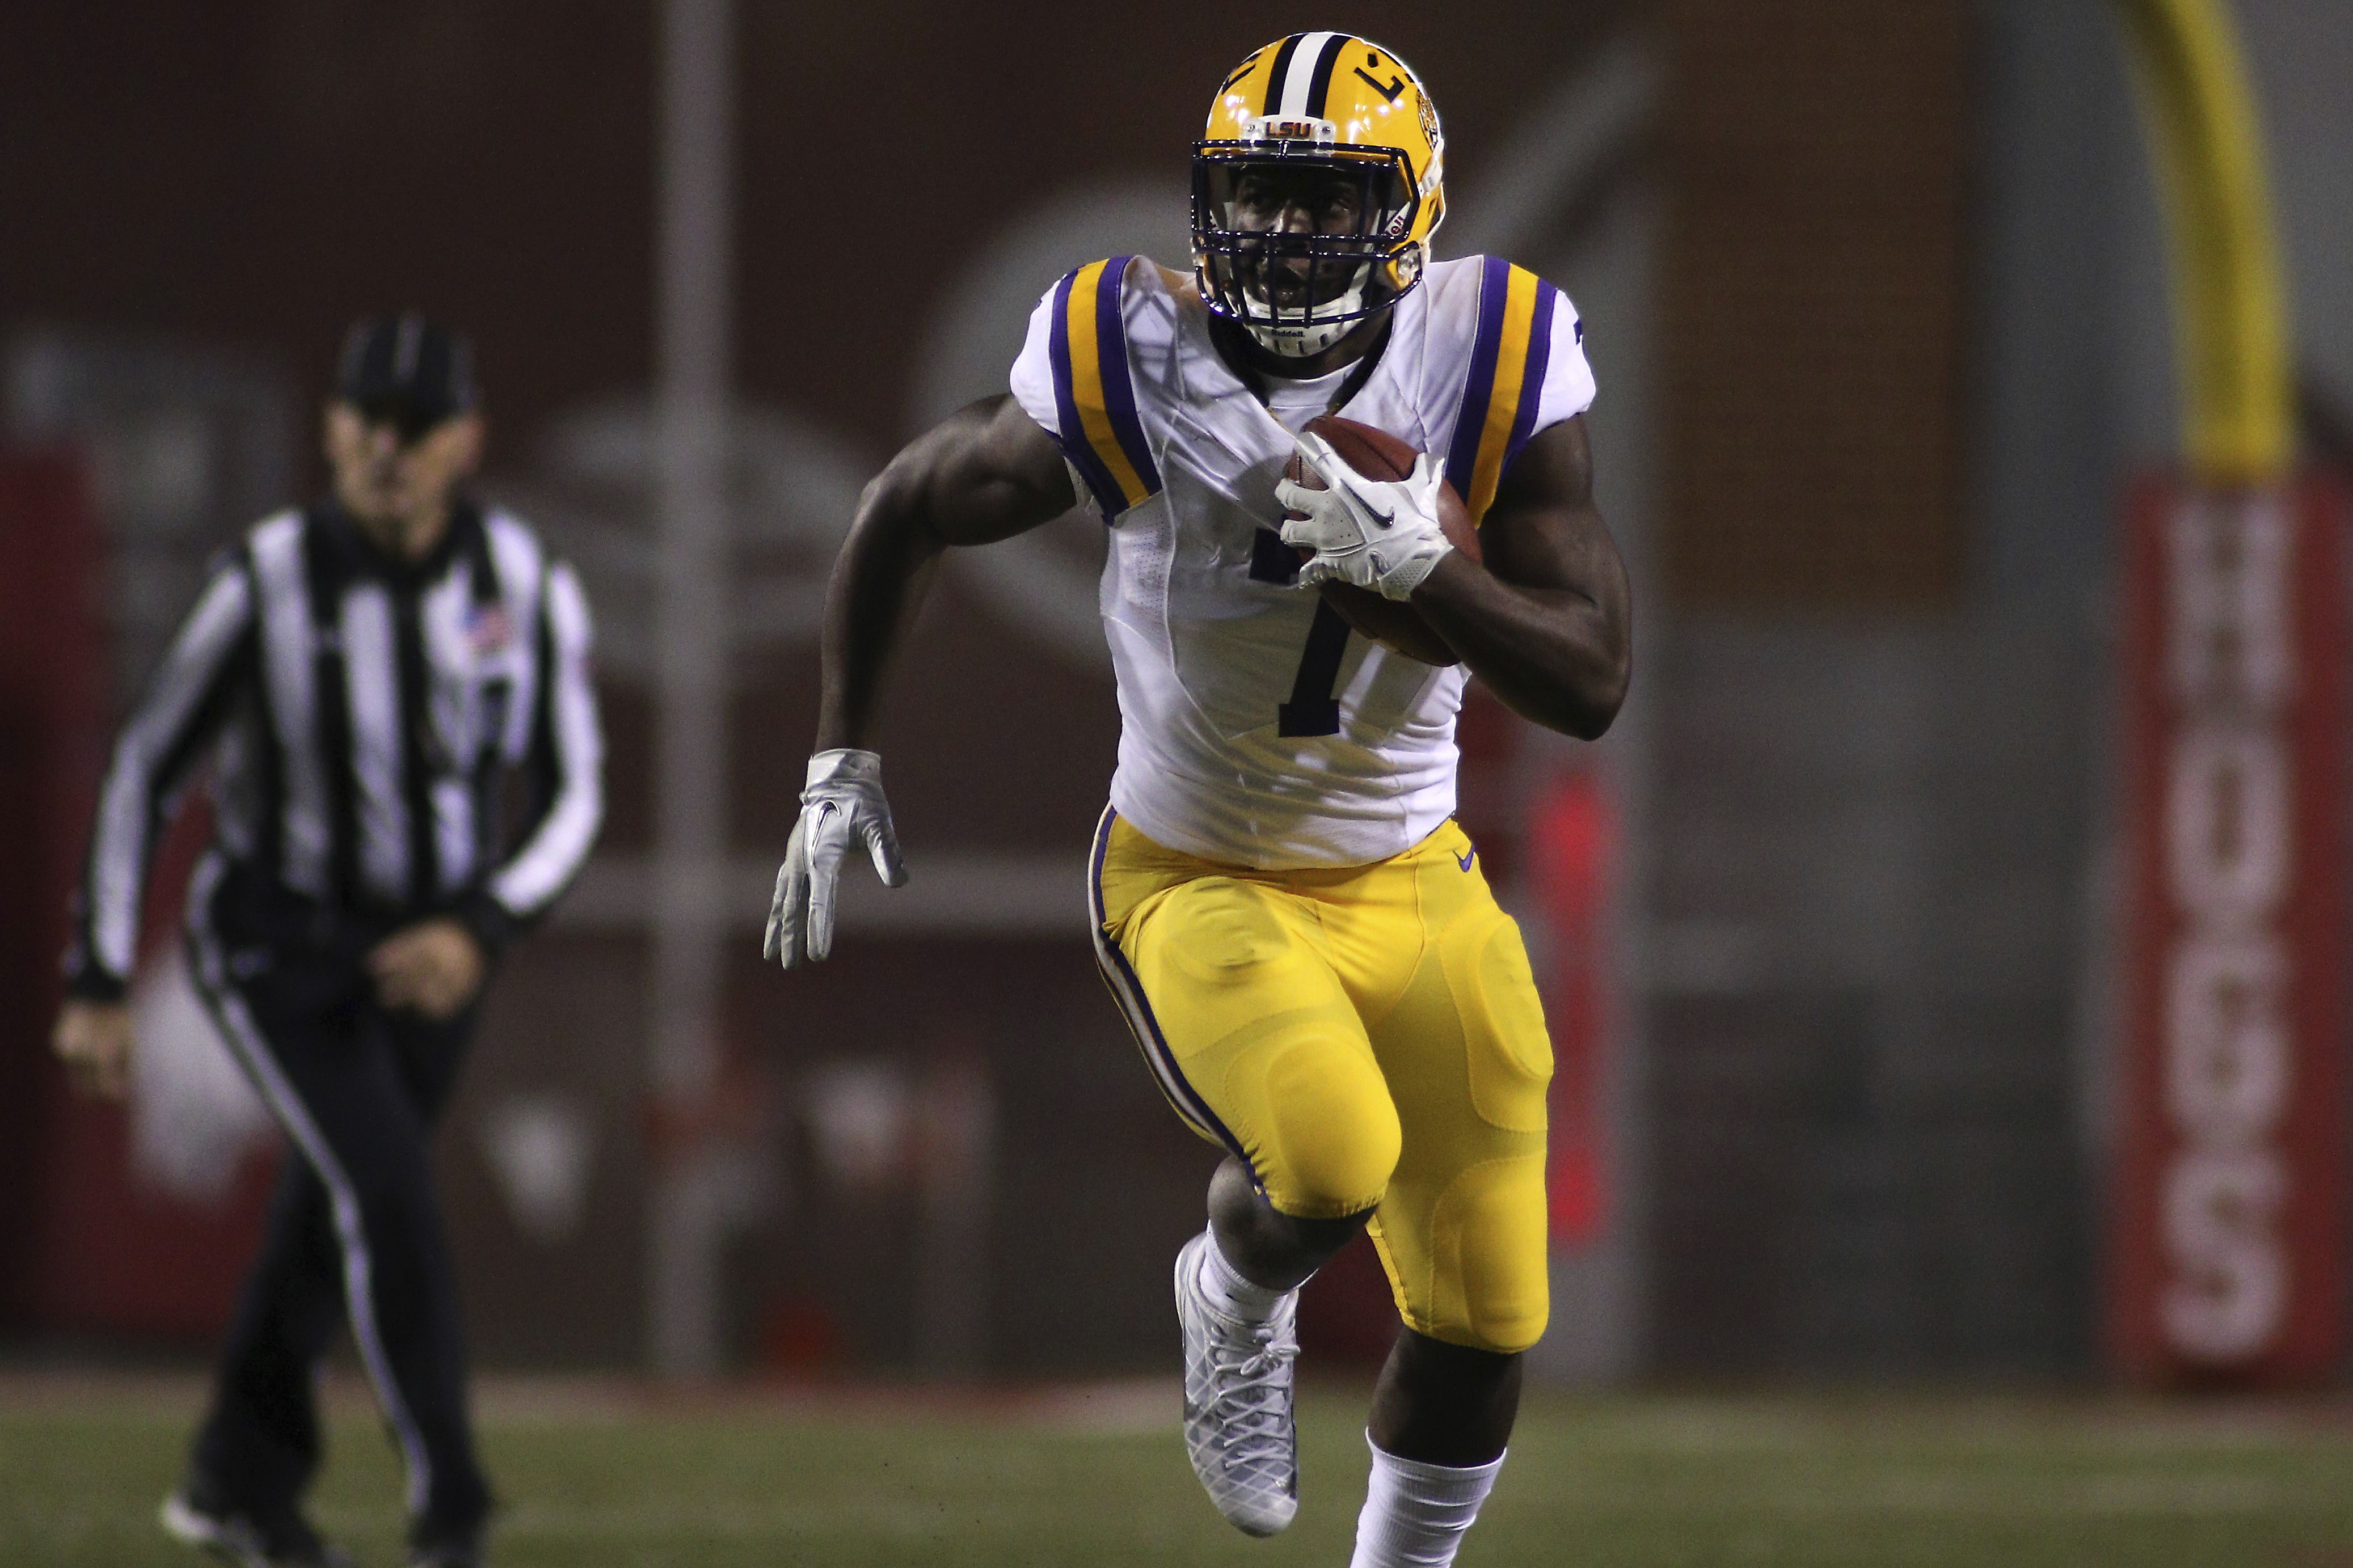 LSU's Leonard Fournette (7) rushes downfield during the first half of an NCAA college football game against Arkansas, Saturday, Nov. 12, 2016, in Fayetteville, Ark. (AP Photo/Samantha Baker)